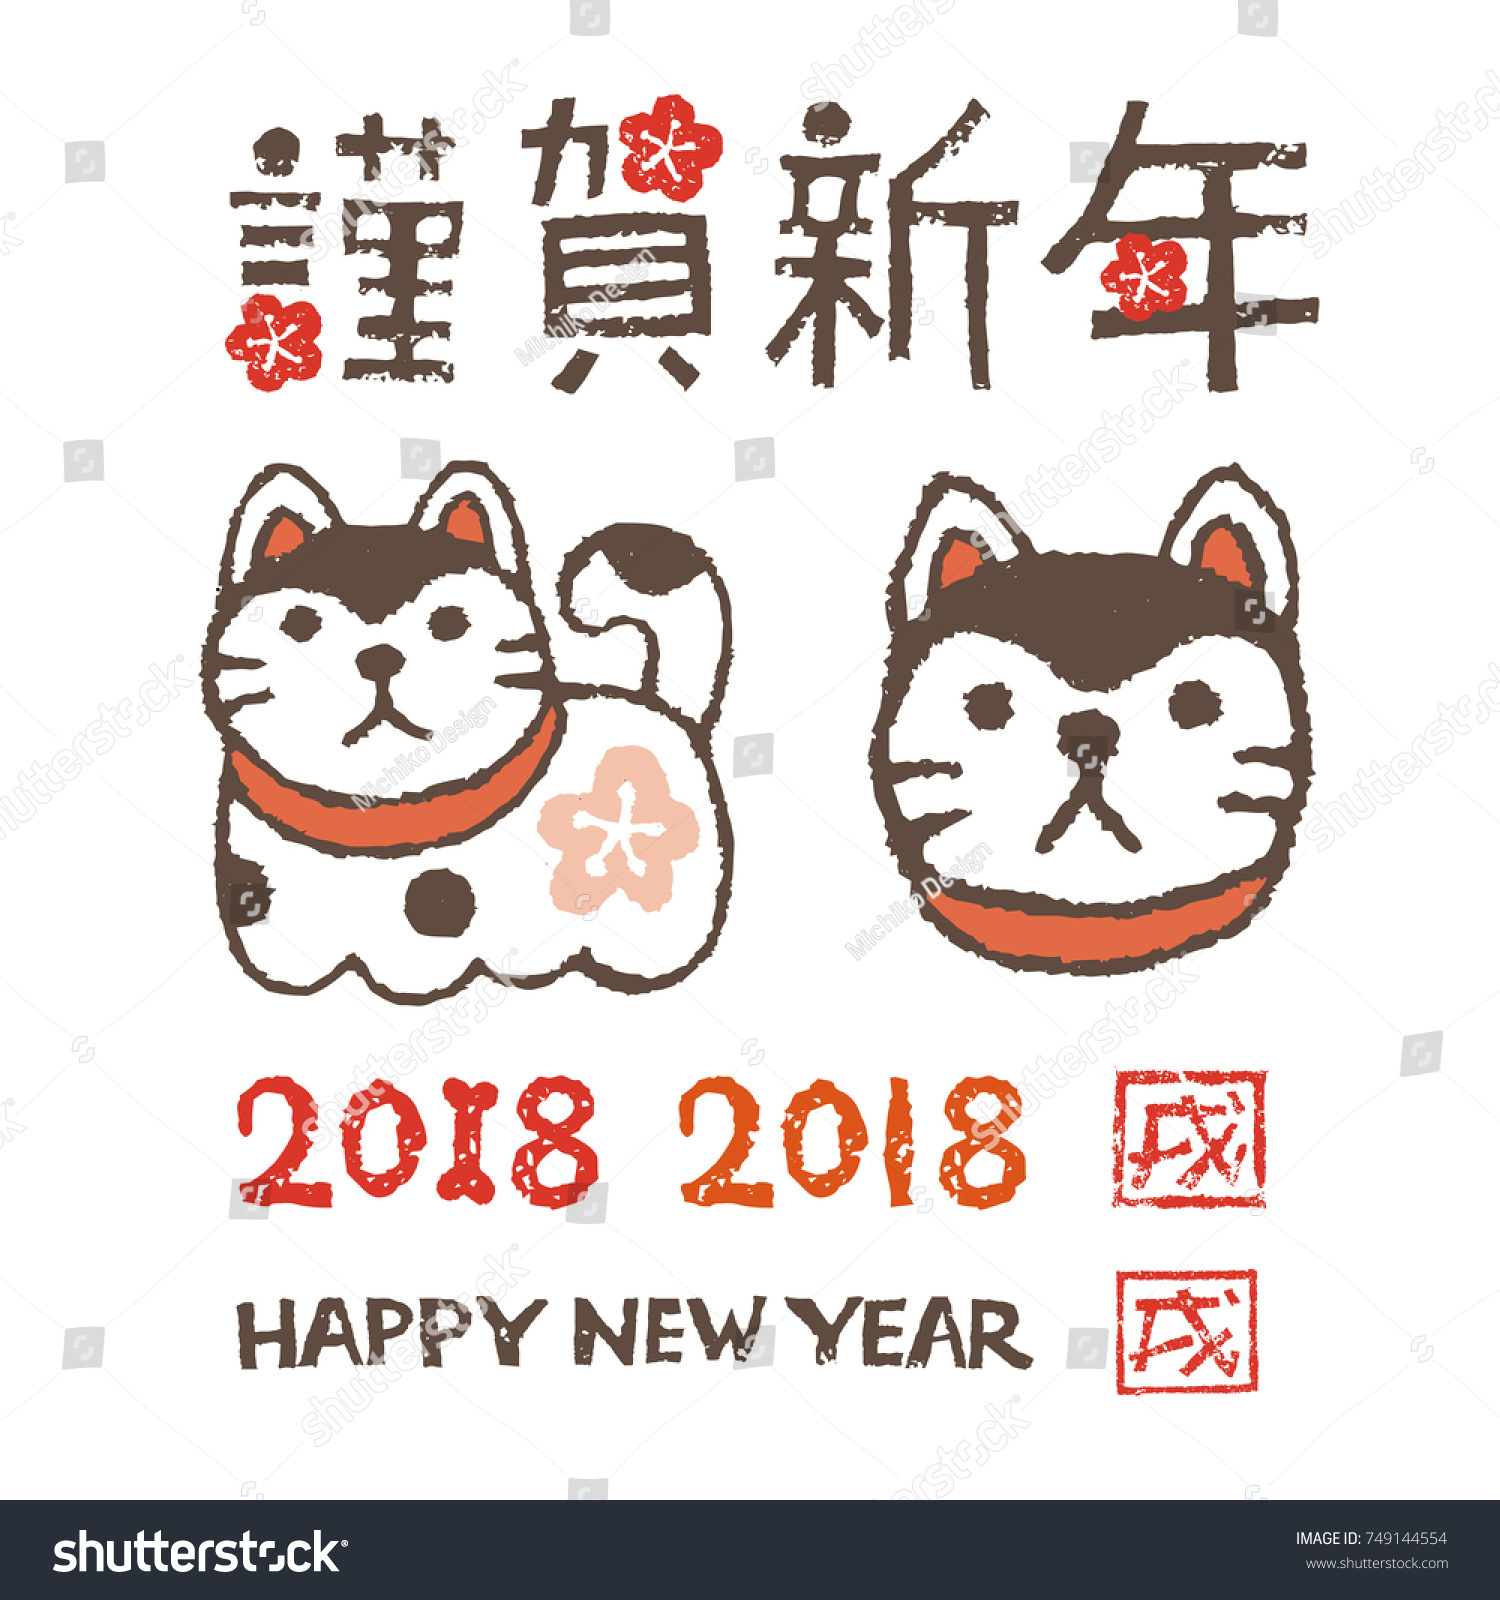 New year elements year dog 2018 stock vector 749144554 shutterstock new year elements for year of the dog 2018 guardian dog and greeting words kristyandbryce Choice Image